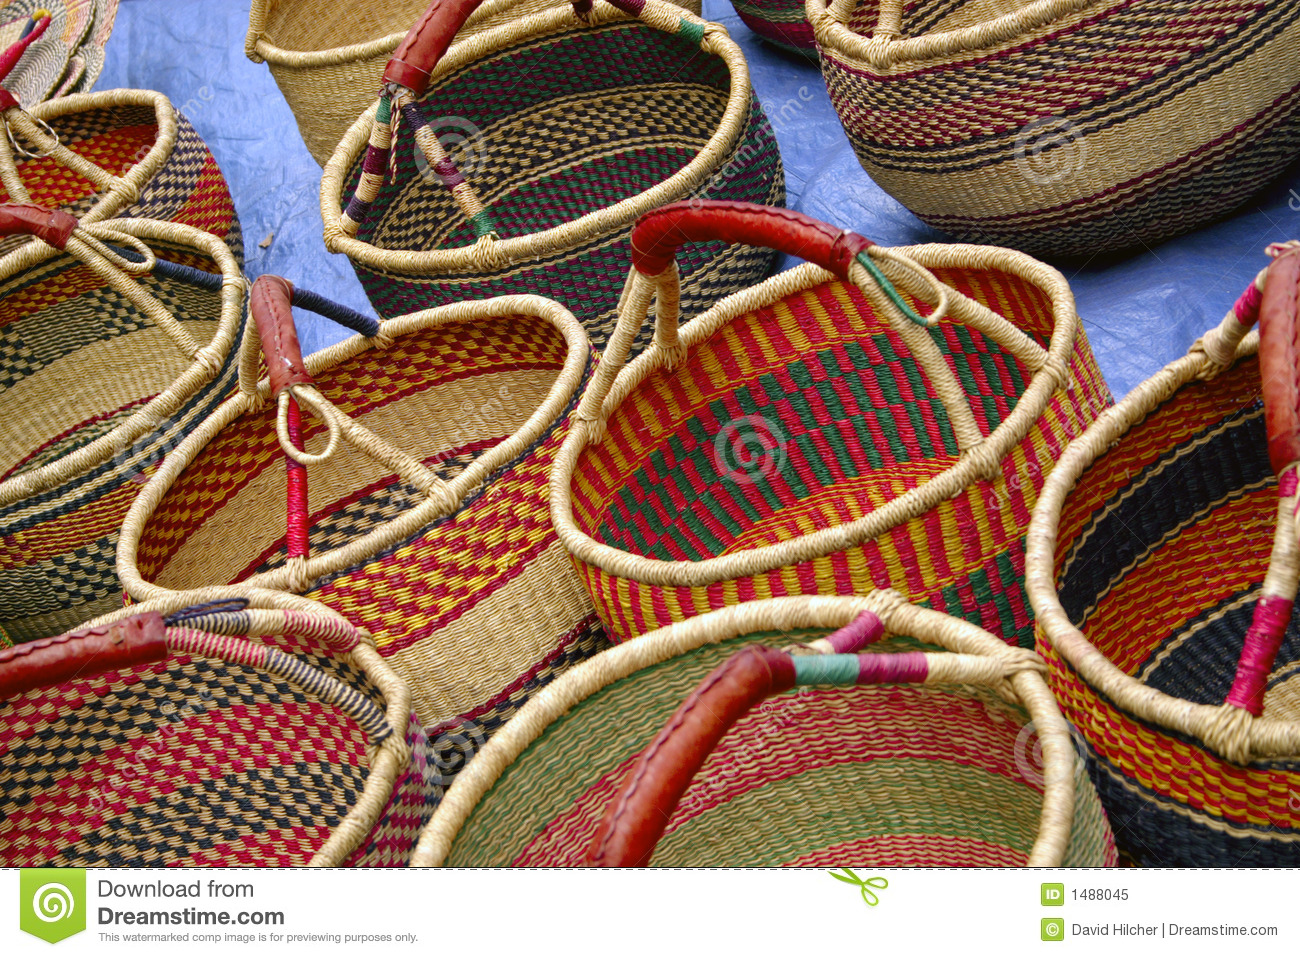 Handmade Baskets In Charleston : Baskets made with rushes typical handmade crafts of